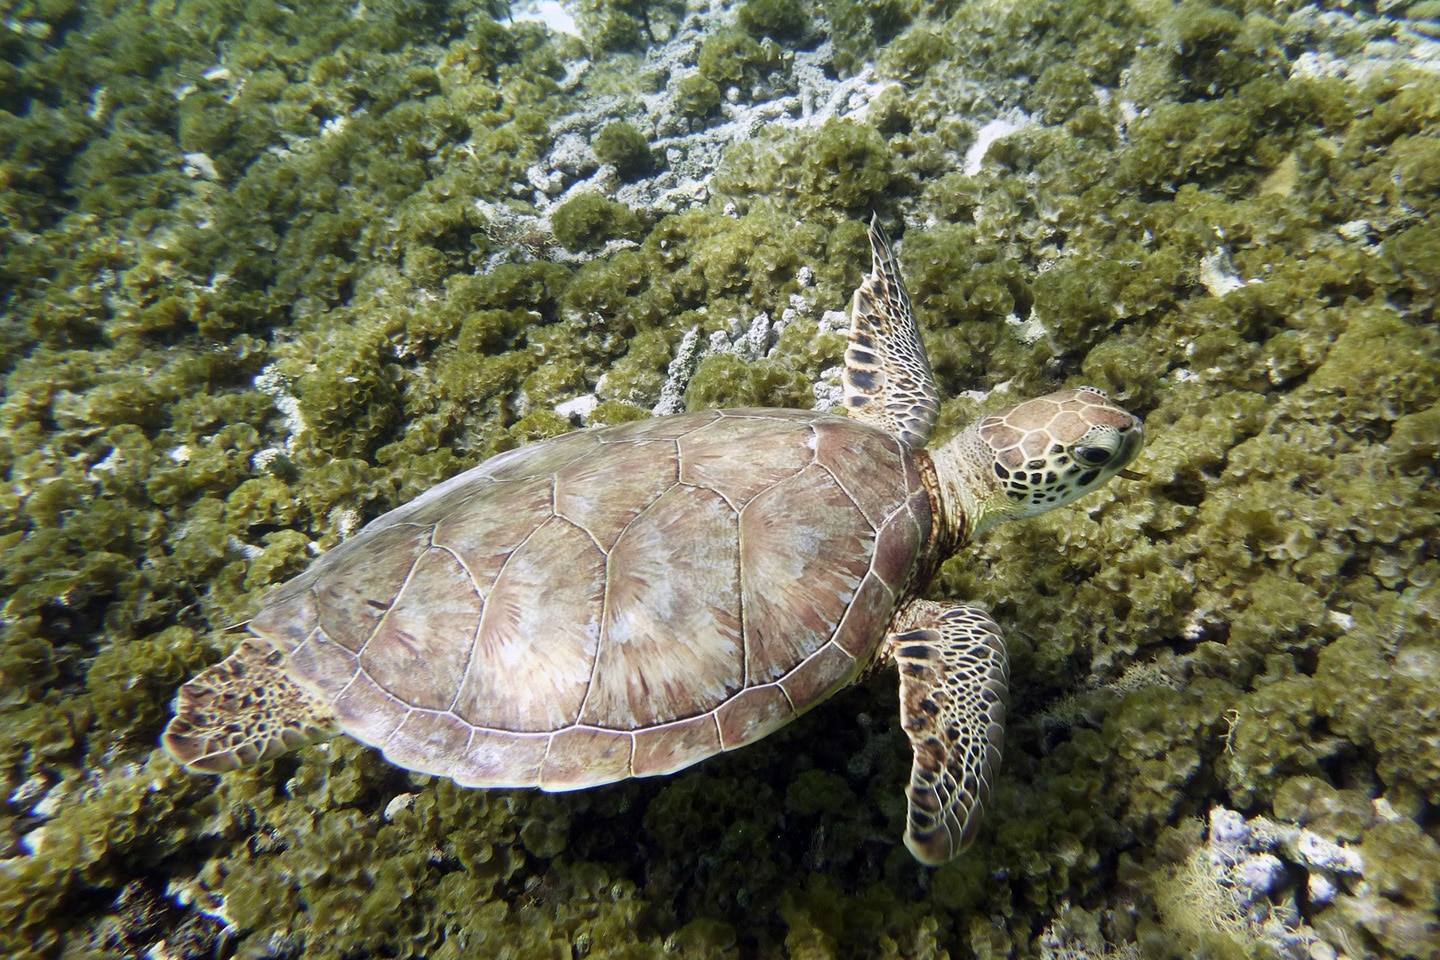 Turtle in Guadeloupe